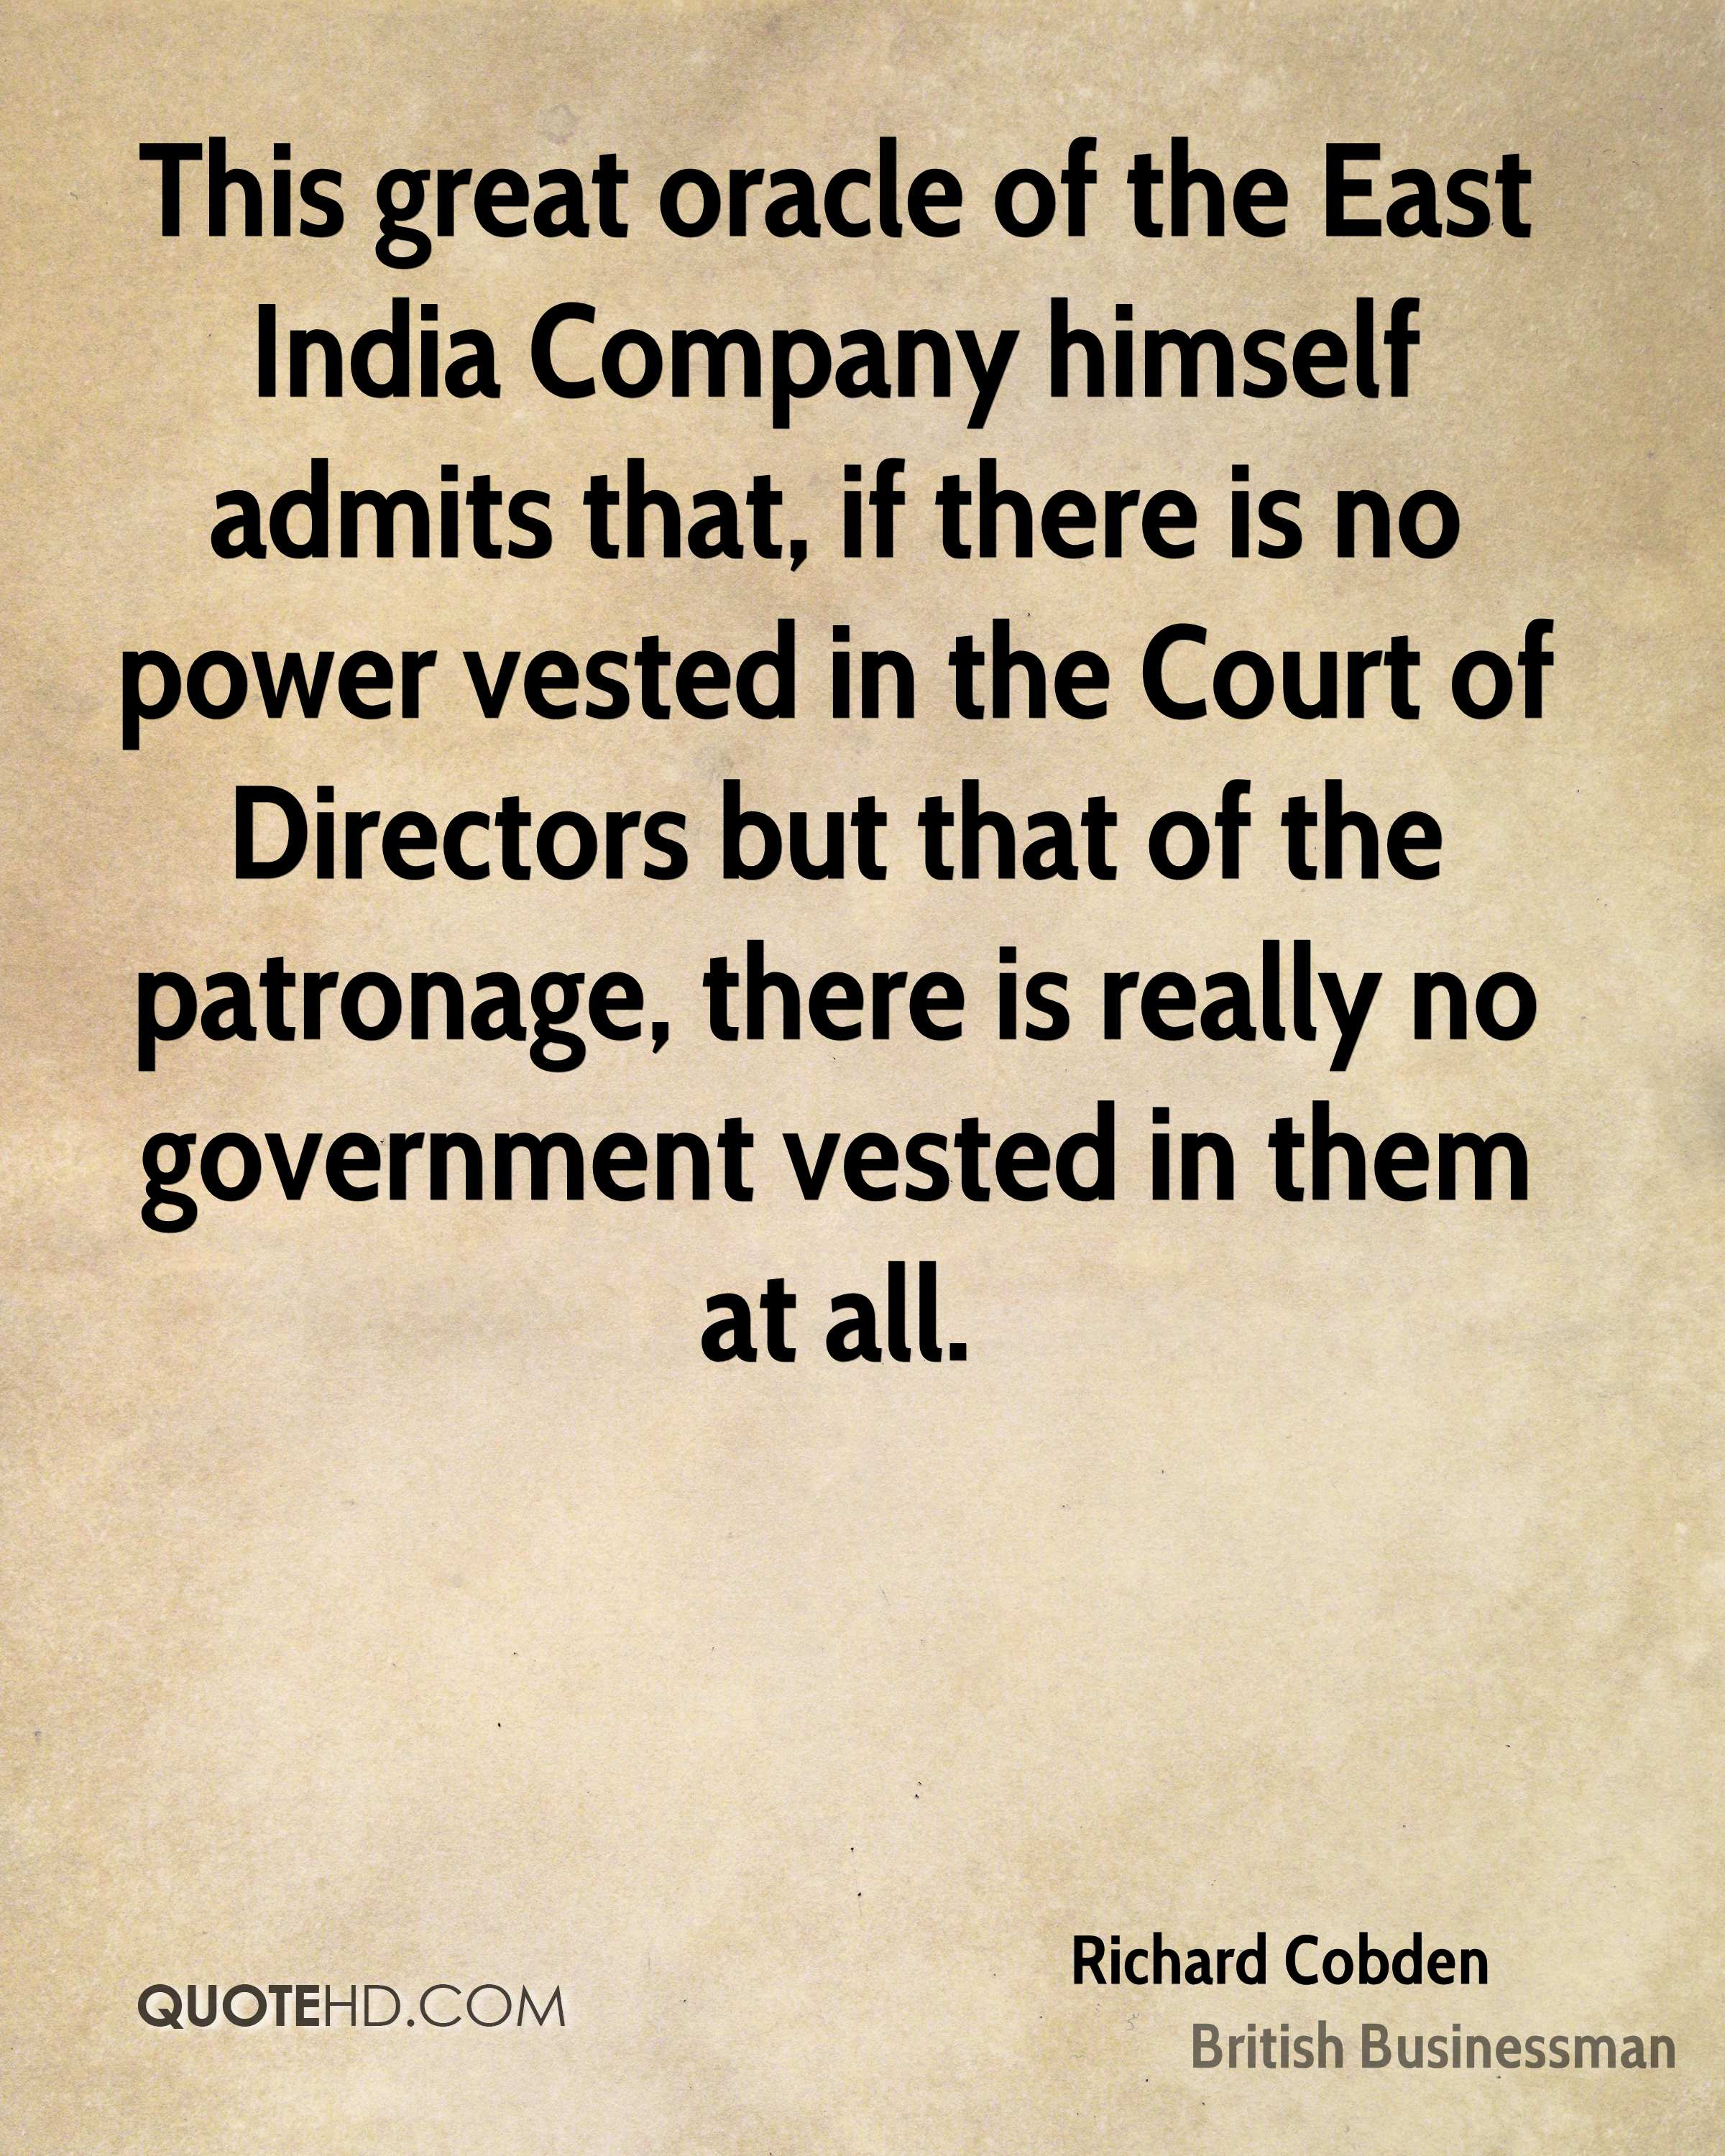 This great oracle of the East India Company himself admits that, if there is no power vested in the Court of Directors but that of the patronage, there is really no government vested in them at all.